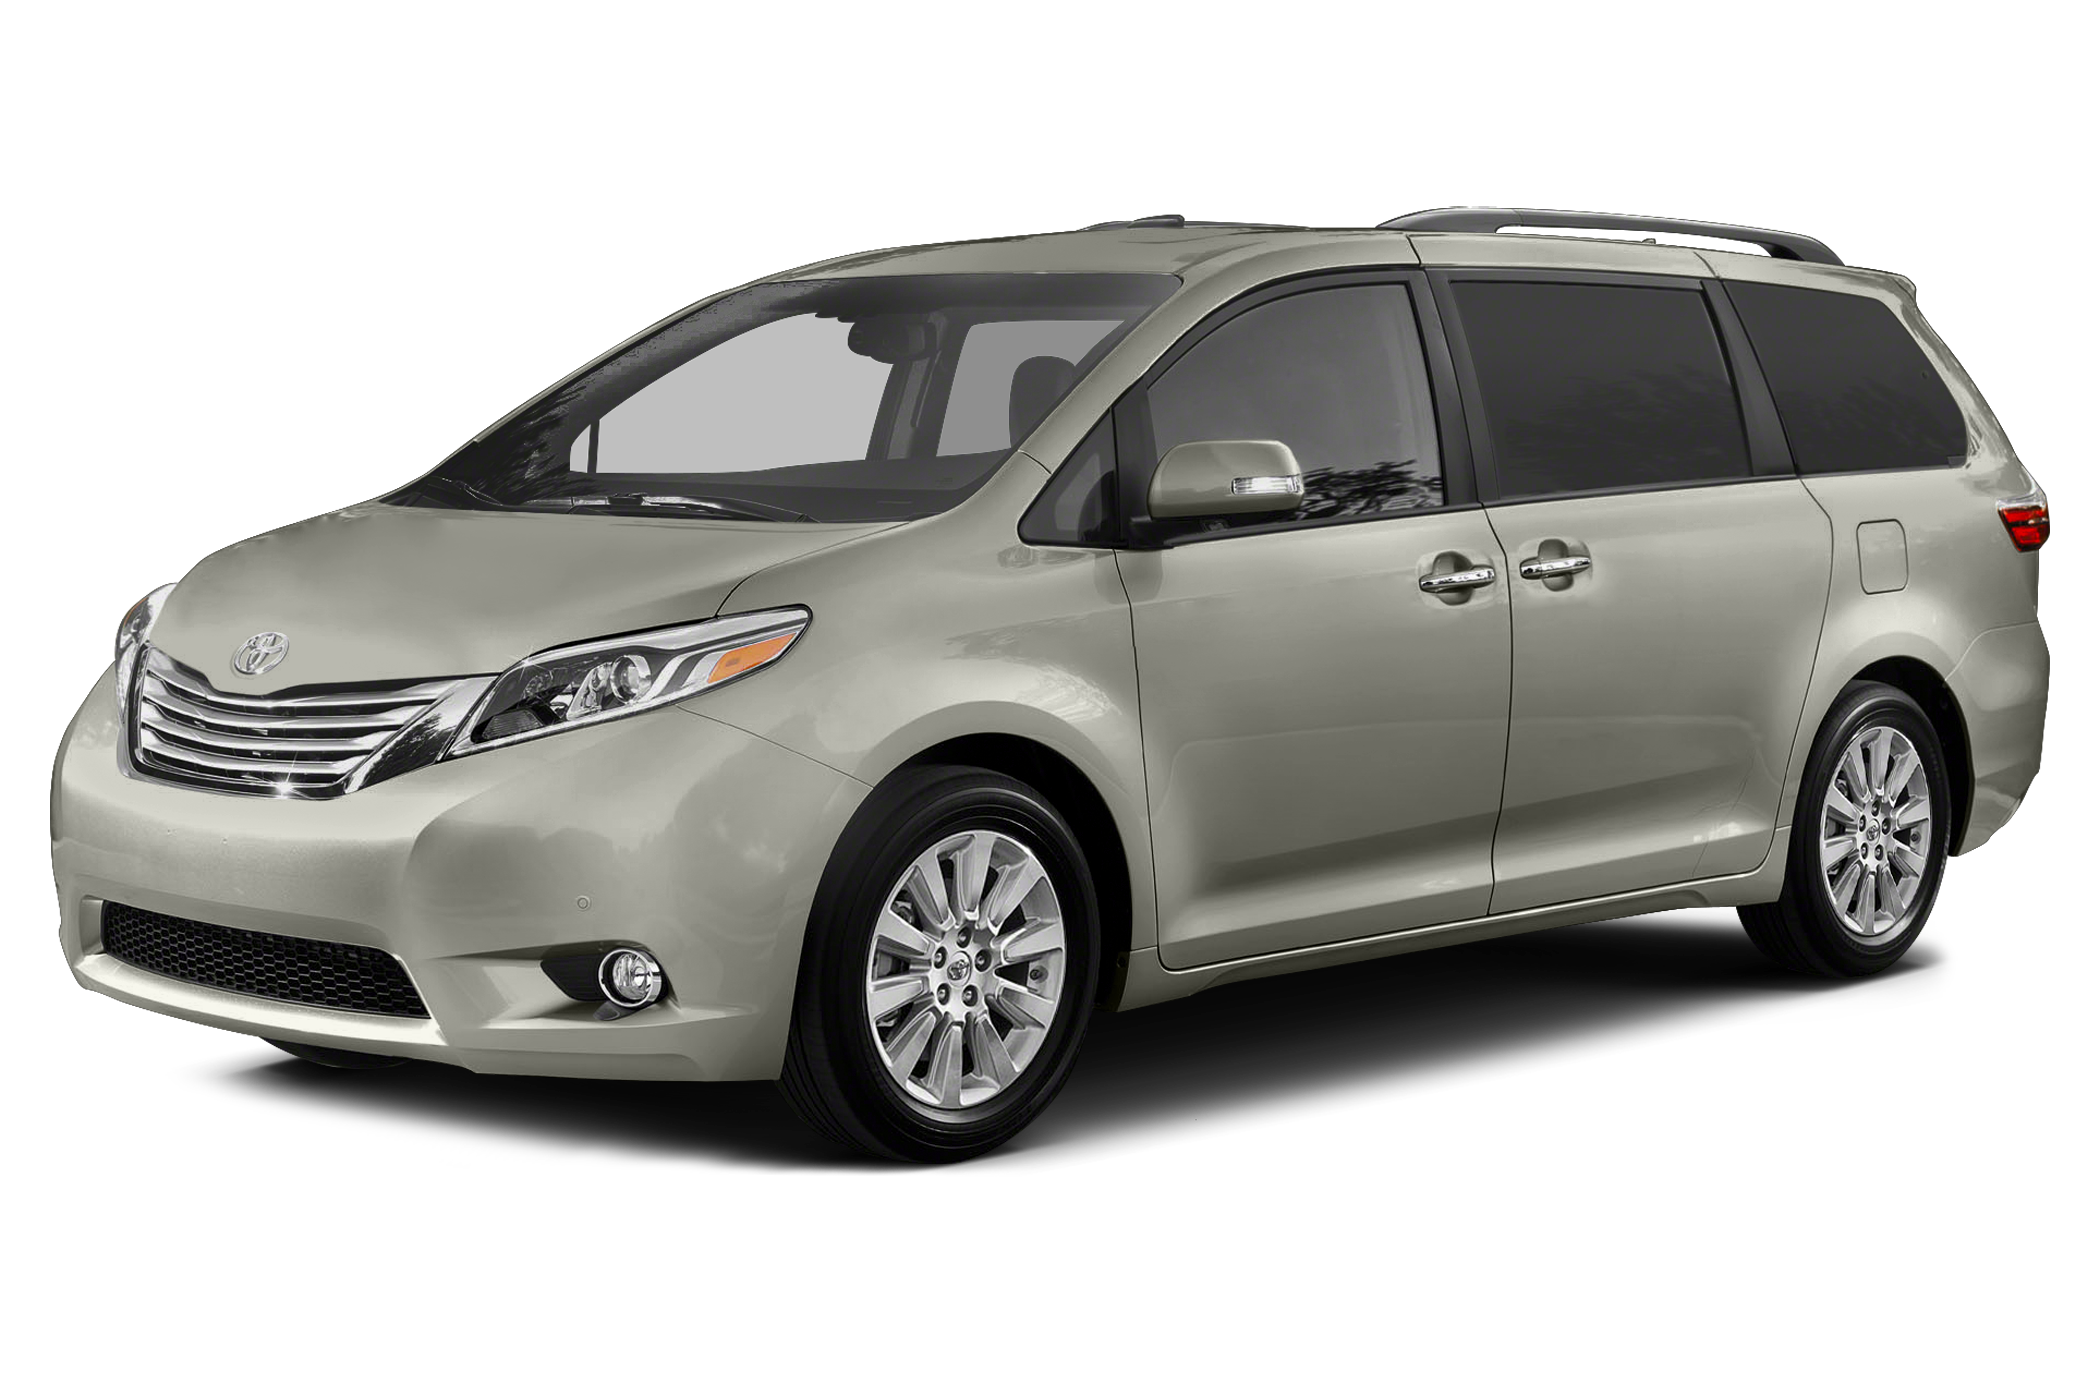 Available in 16 styles: 2015 Toyota Sienna 4dr FWD Passenger Van shown